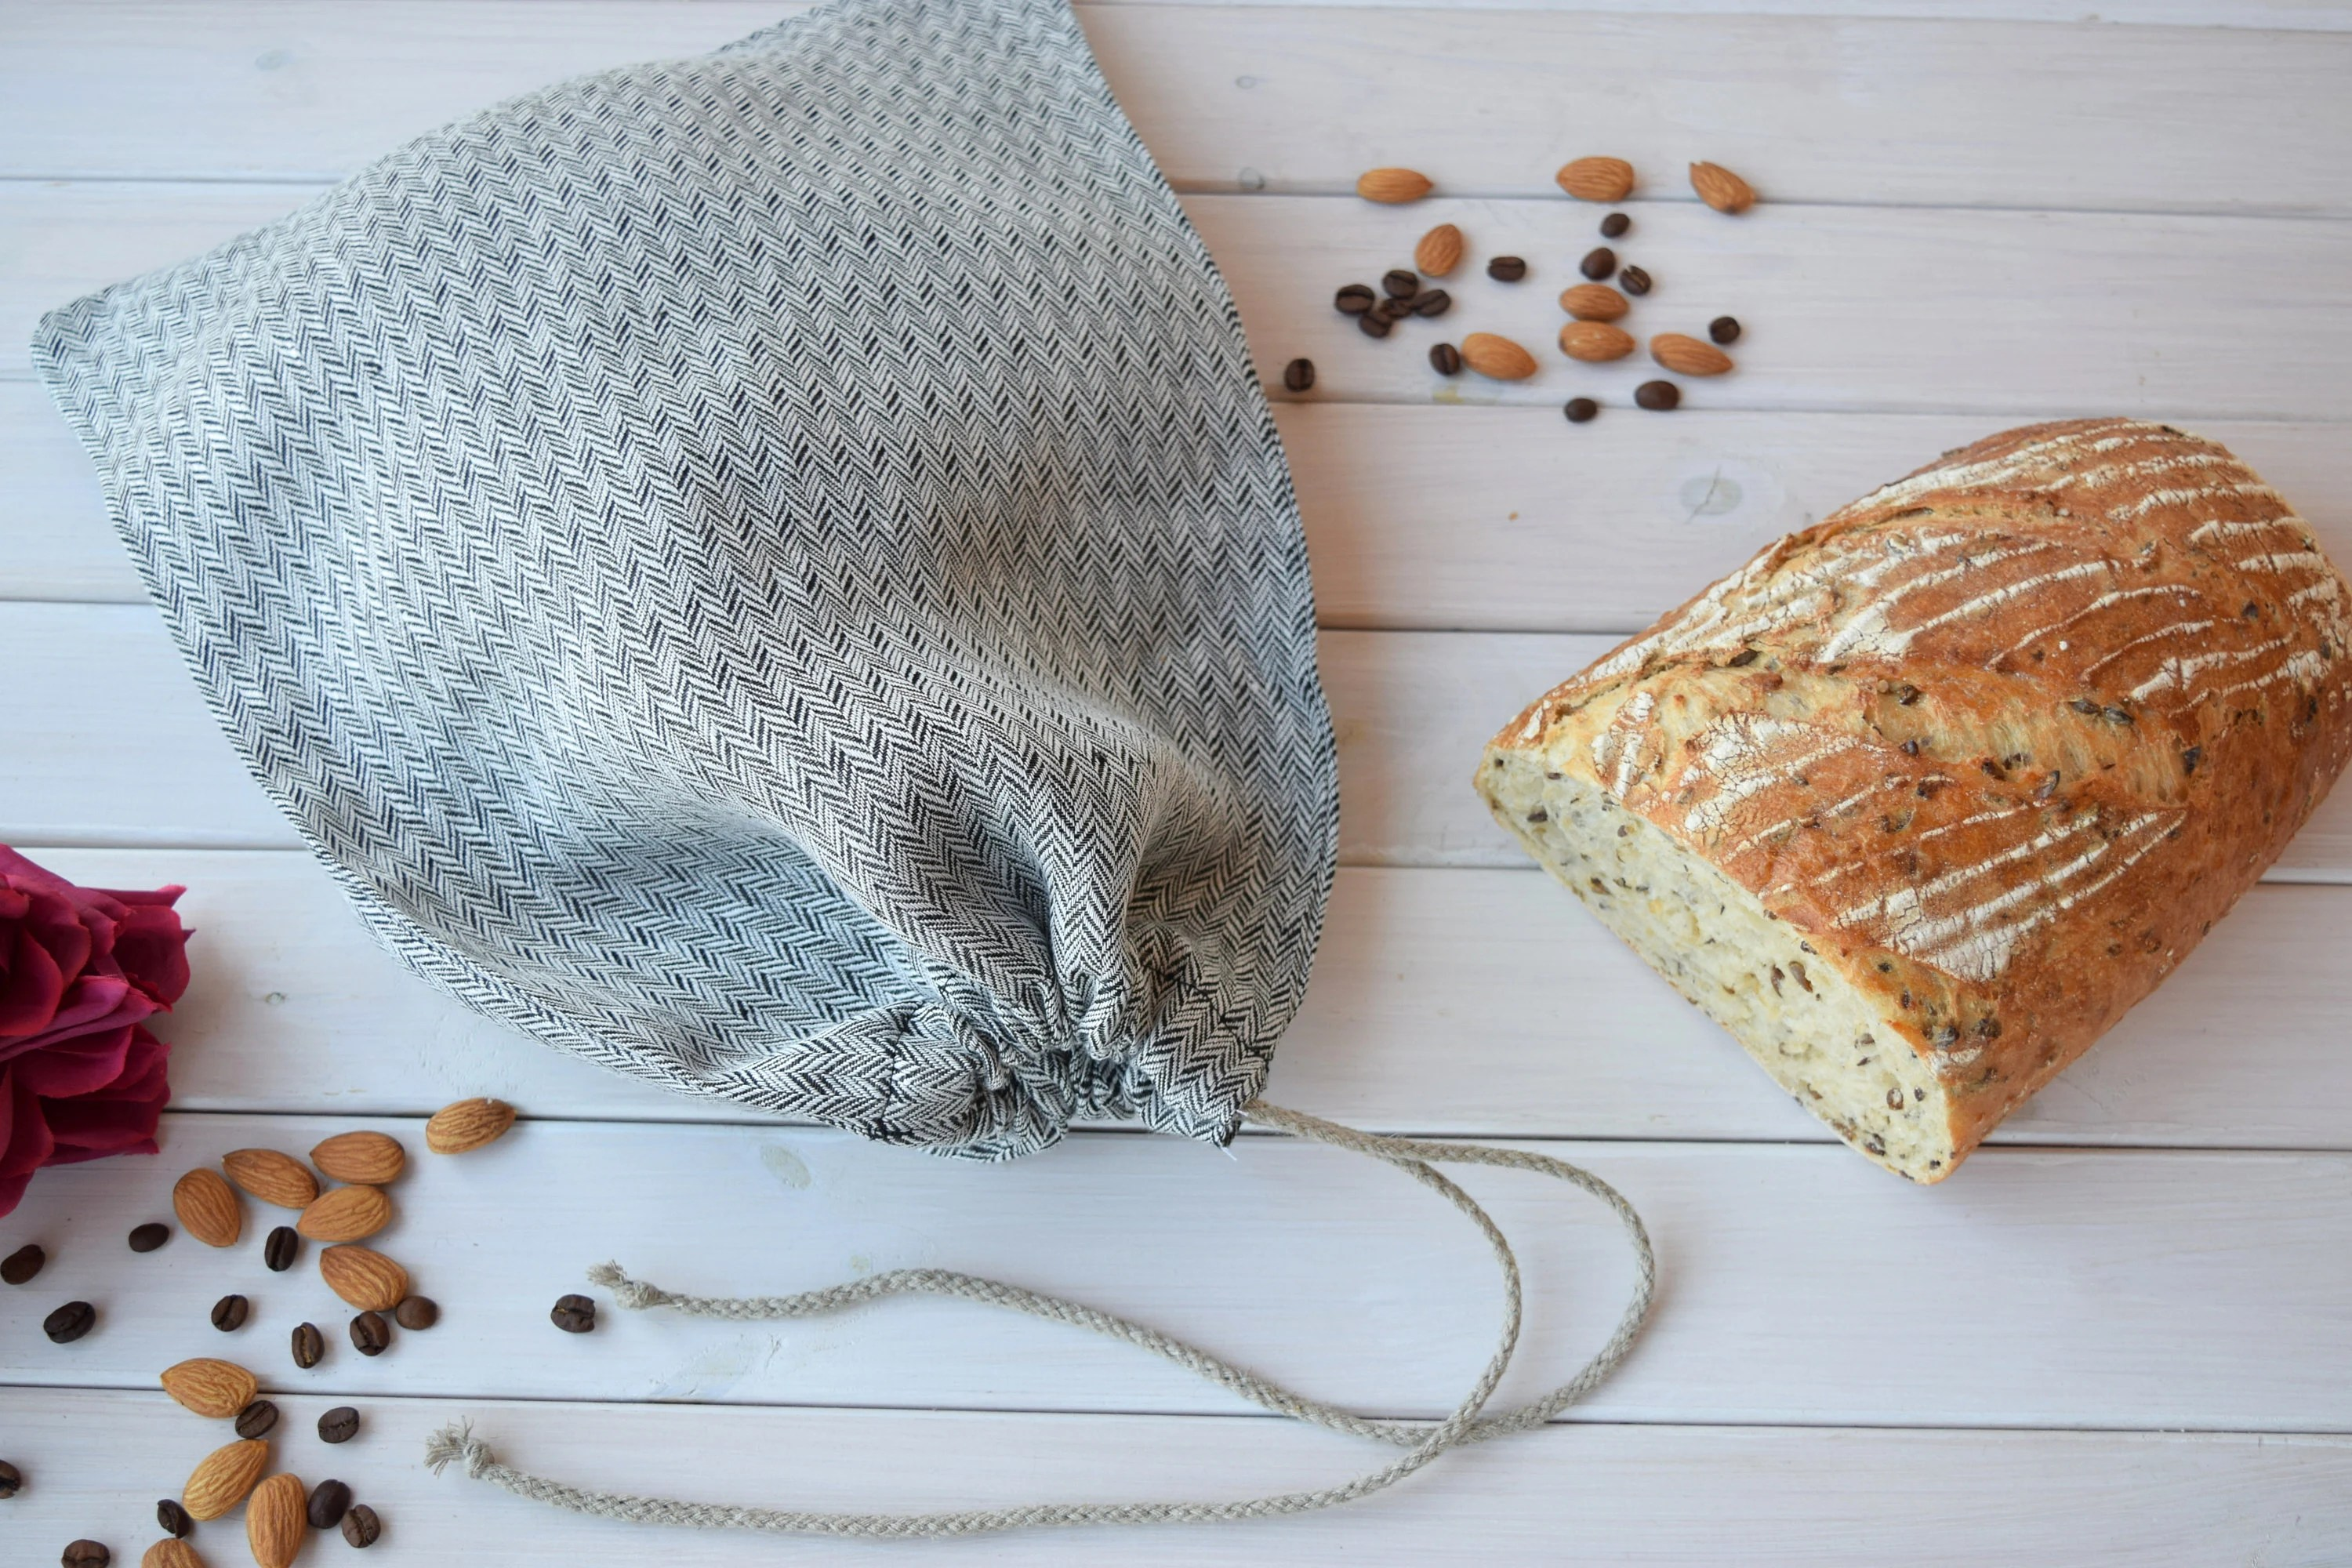 Storage Sac Bread Keeper Linen Cloth Bag Bread Storage Sac Pain Bread Bag Food Gift Basket Baguette Pain Flax Bread Bag Bread Bag Korbtasche